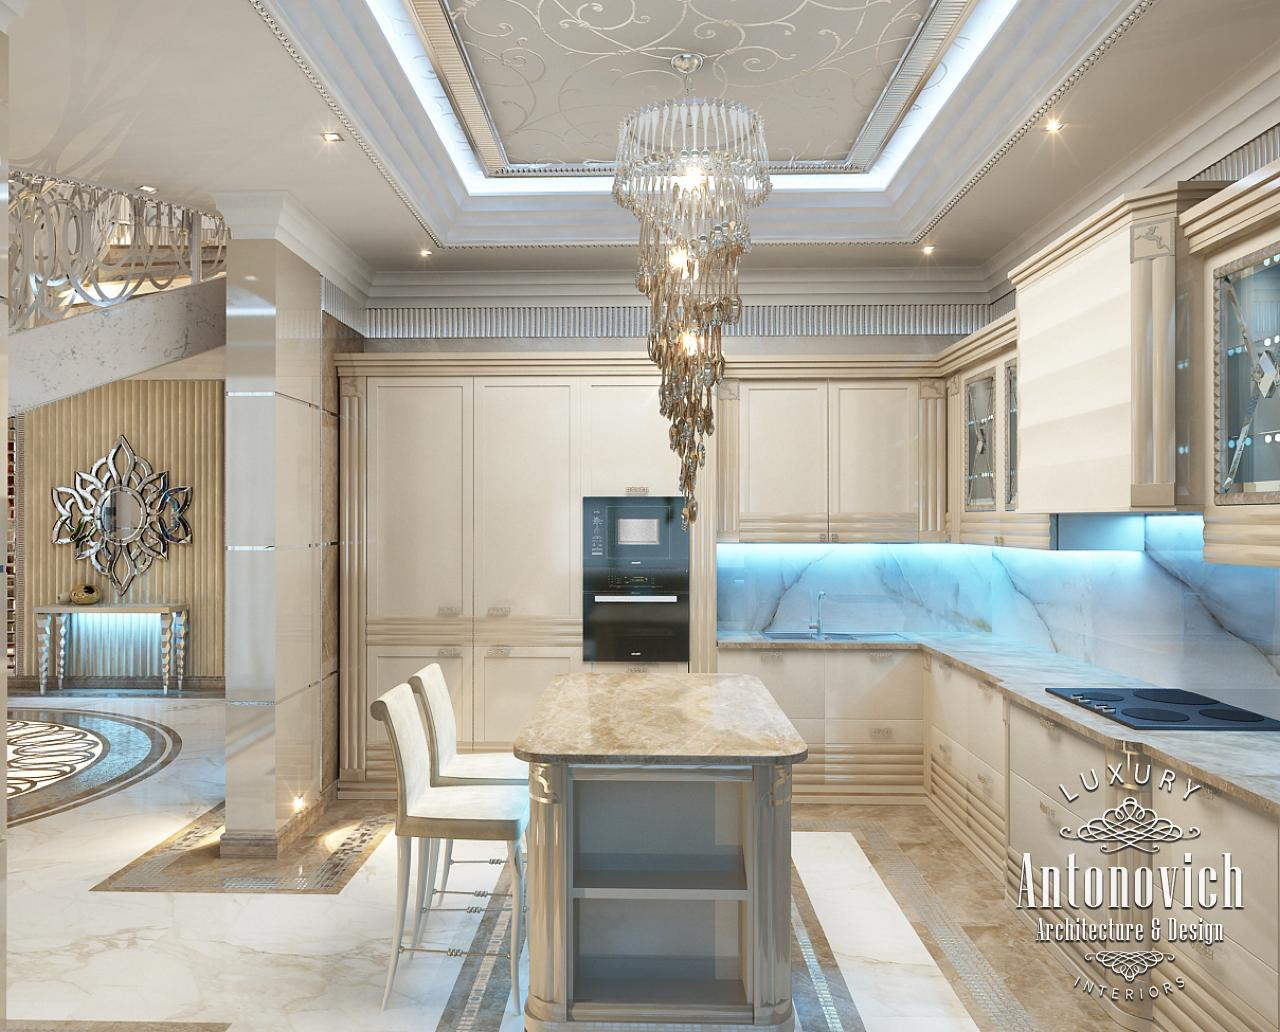 Luxury antonovich design uae luxury interior design dubai for Luxury apartment interior design ideas